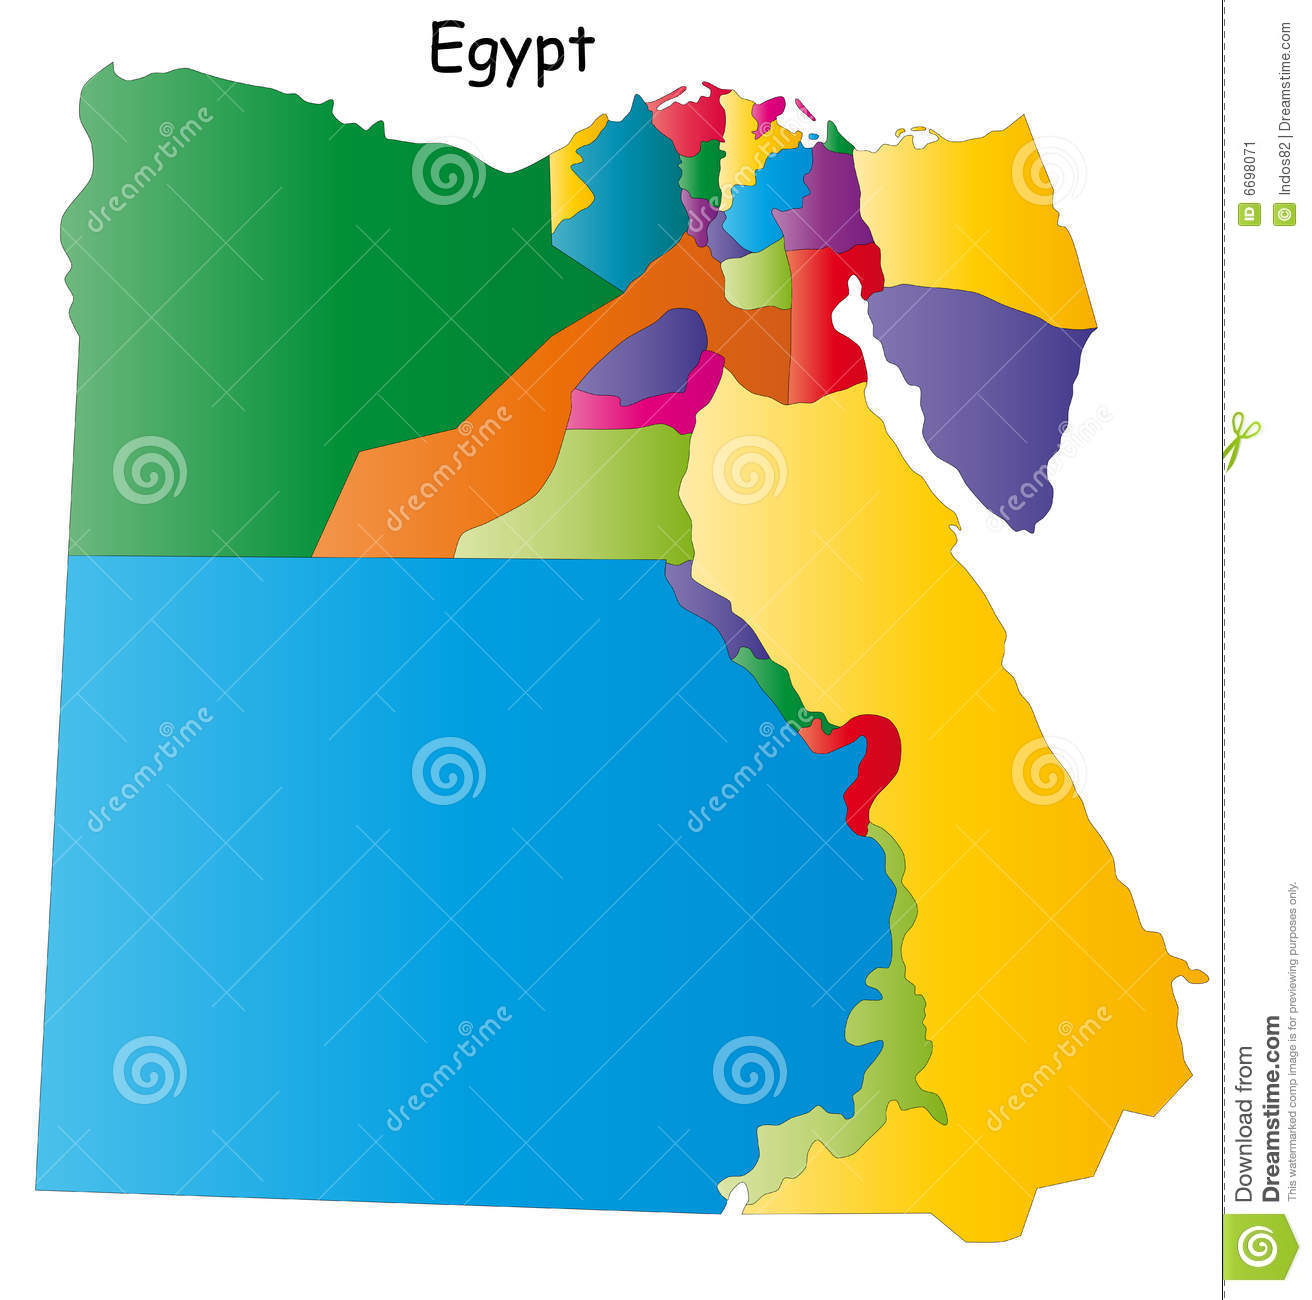 Vector Egypt Map Stock Vector Image Of Earth Cairo Continent - Map of egypt vector